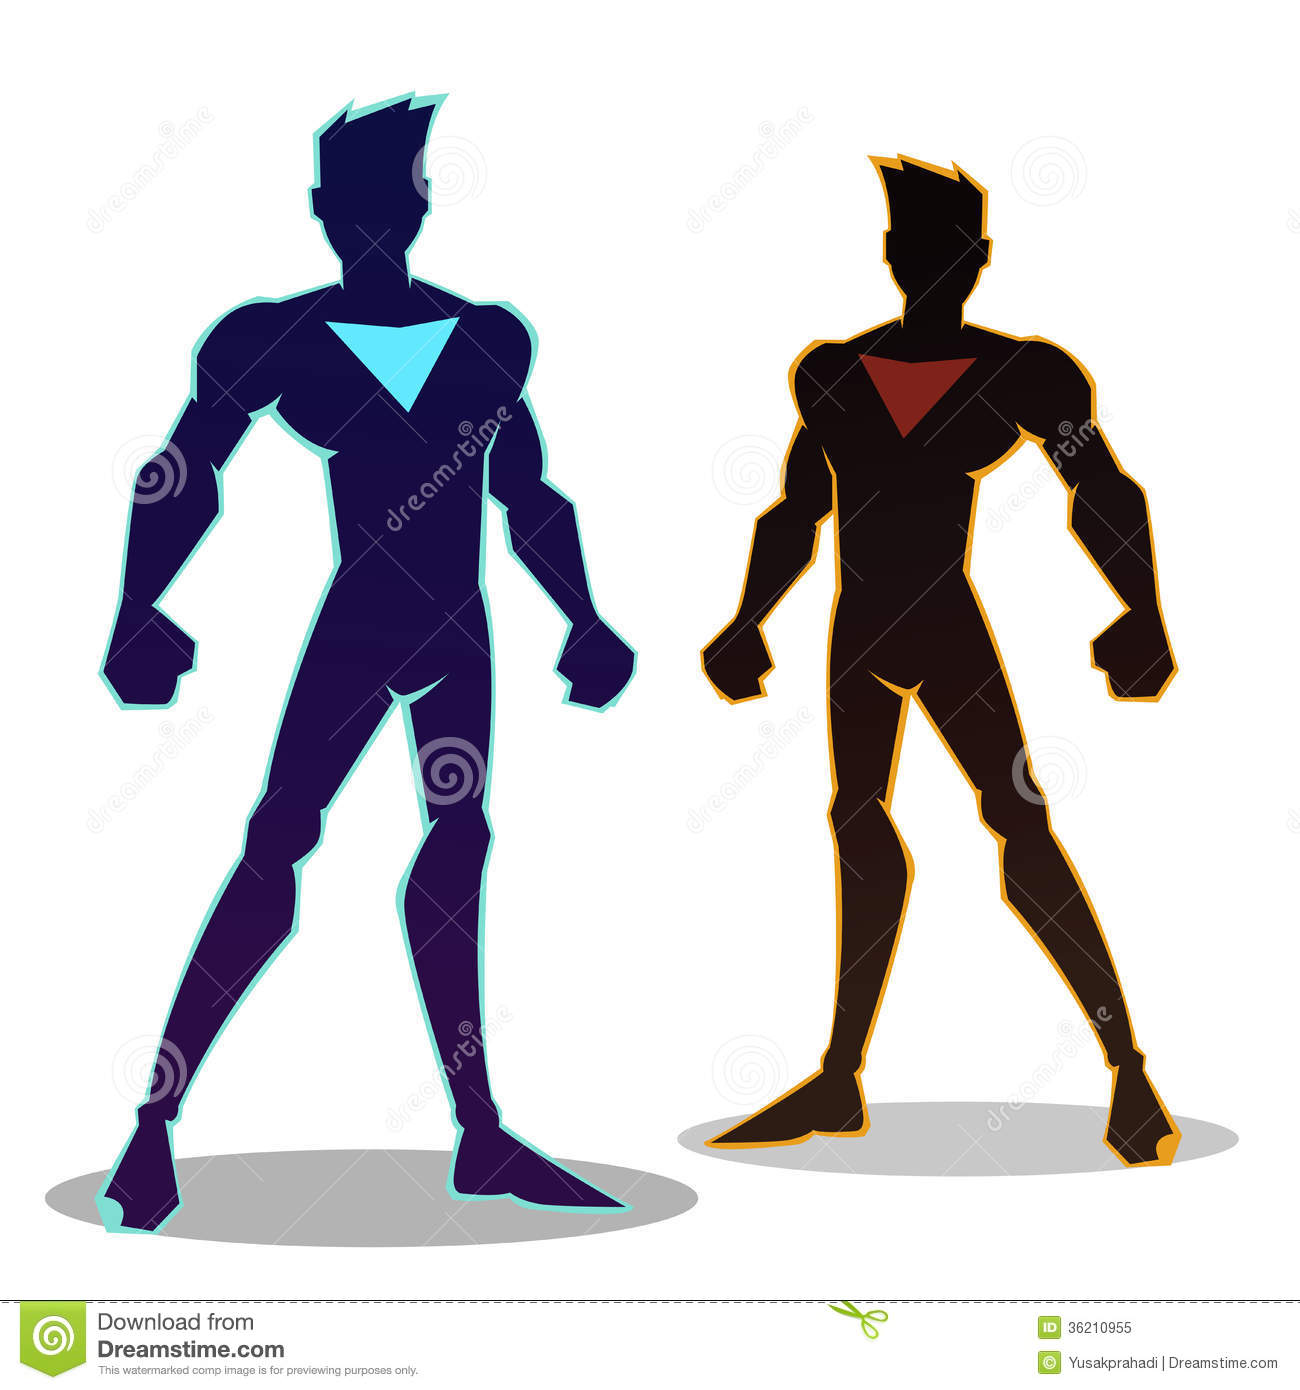 Super Hero Sillhouette Royalty Free Stock Photo - Image: 36210955